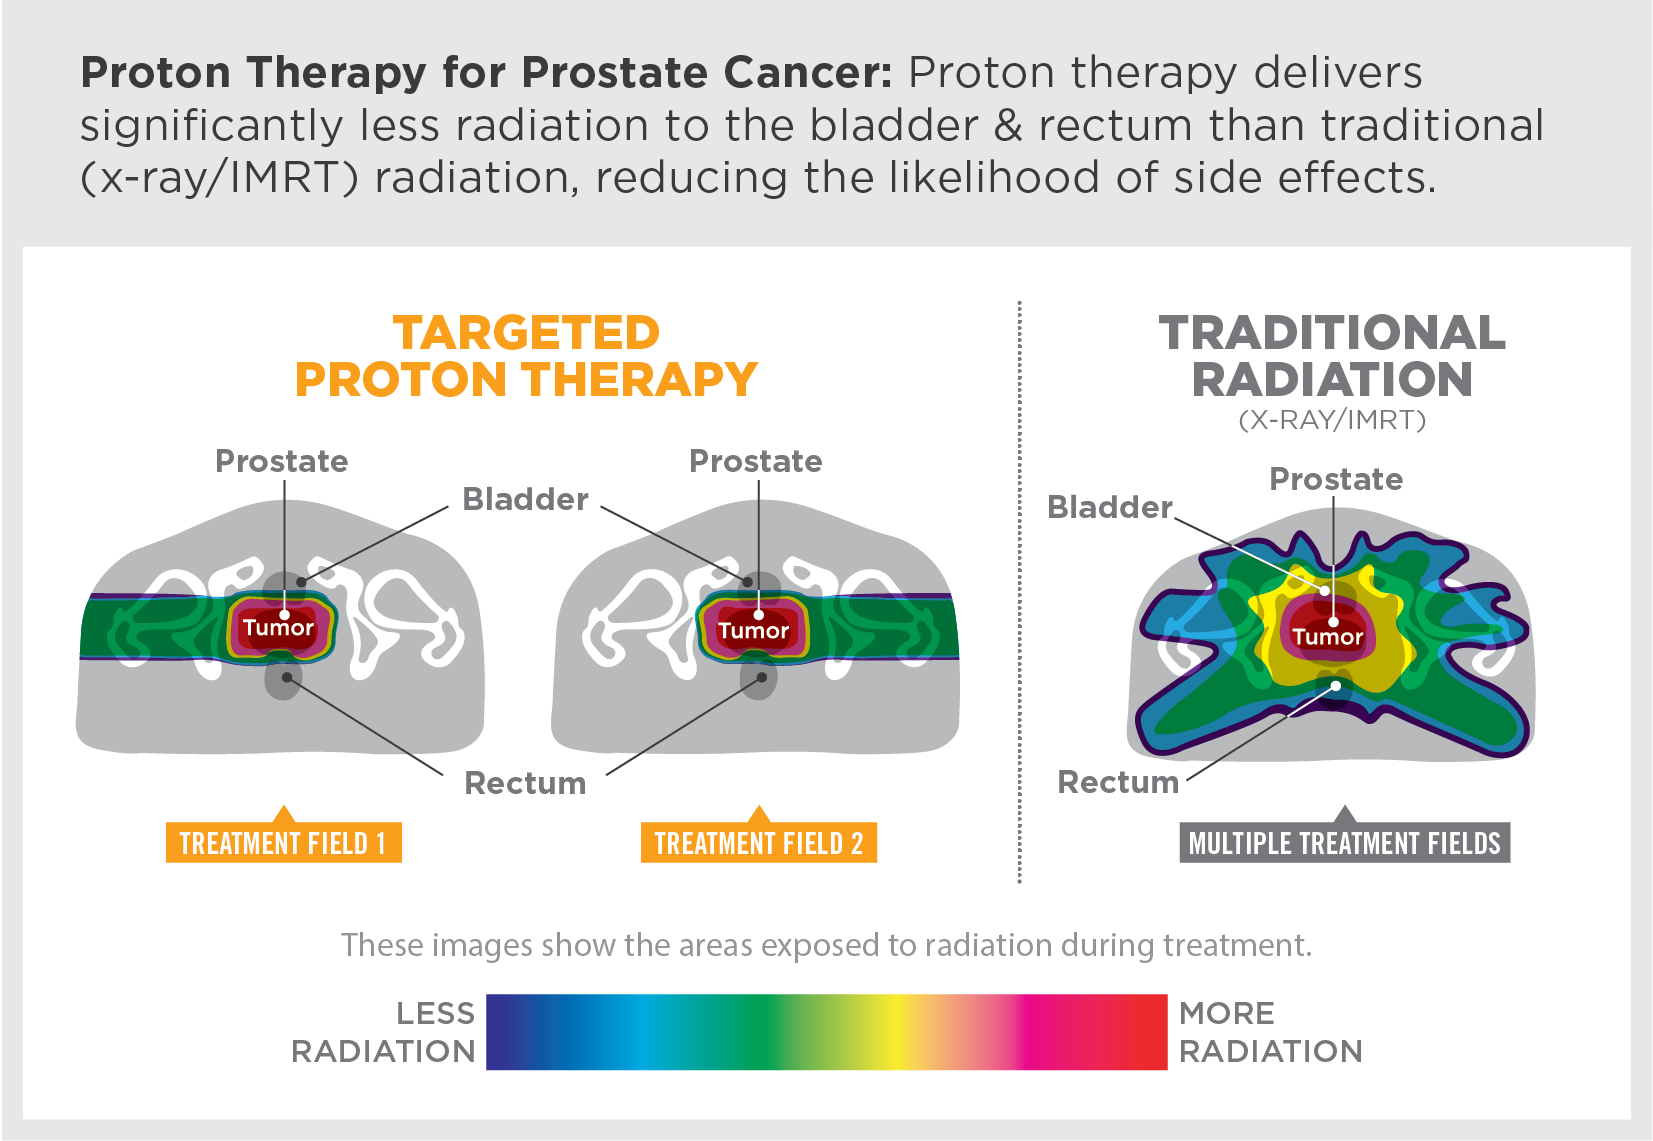 Proton therapy delivers significantly less radiation to the bladder and rectum than traditional (x-ray/IMRT) radiation, reducing the likelihood of side effects.